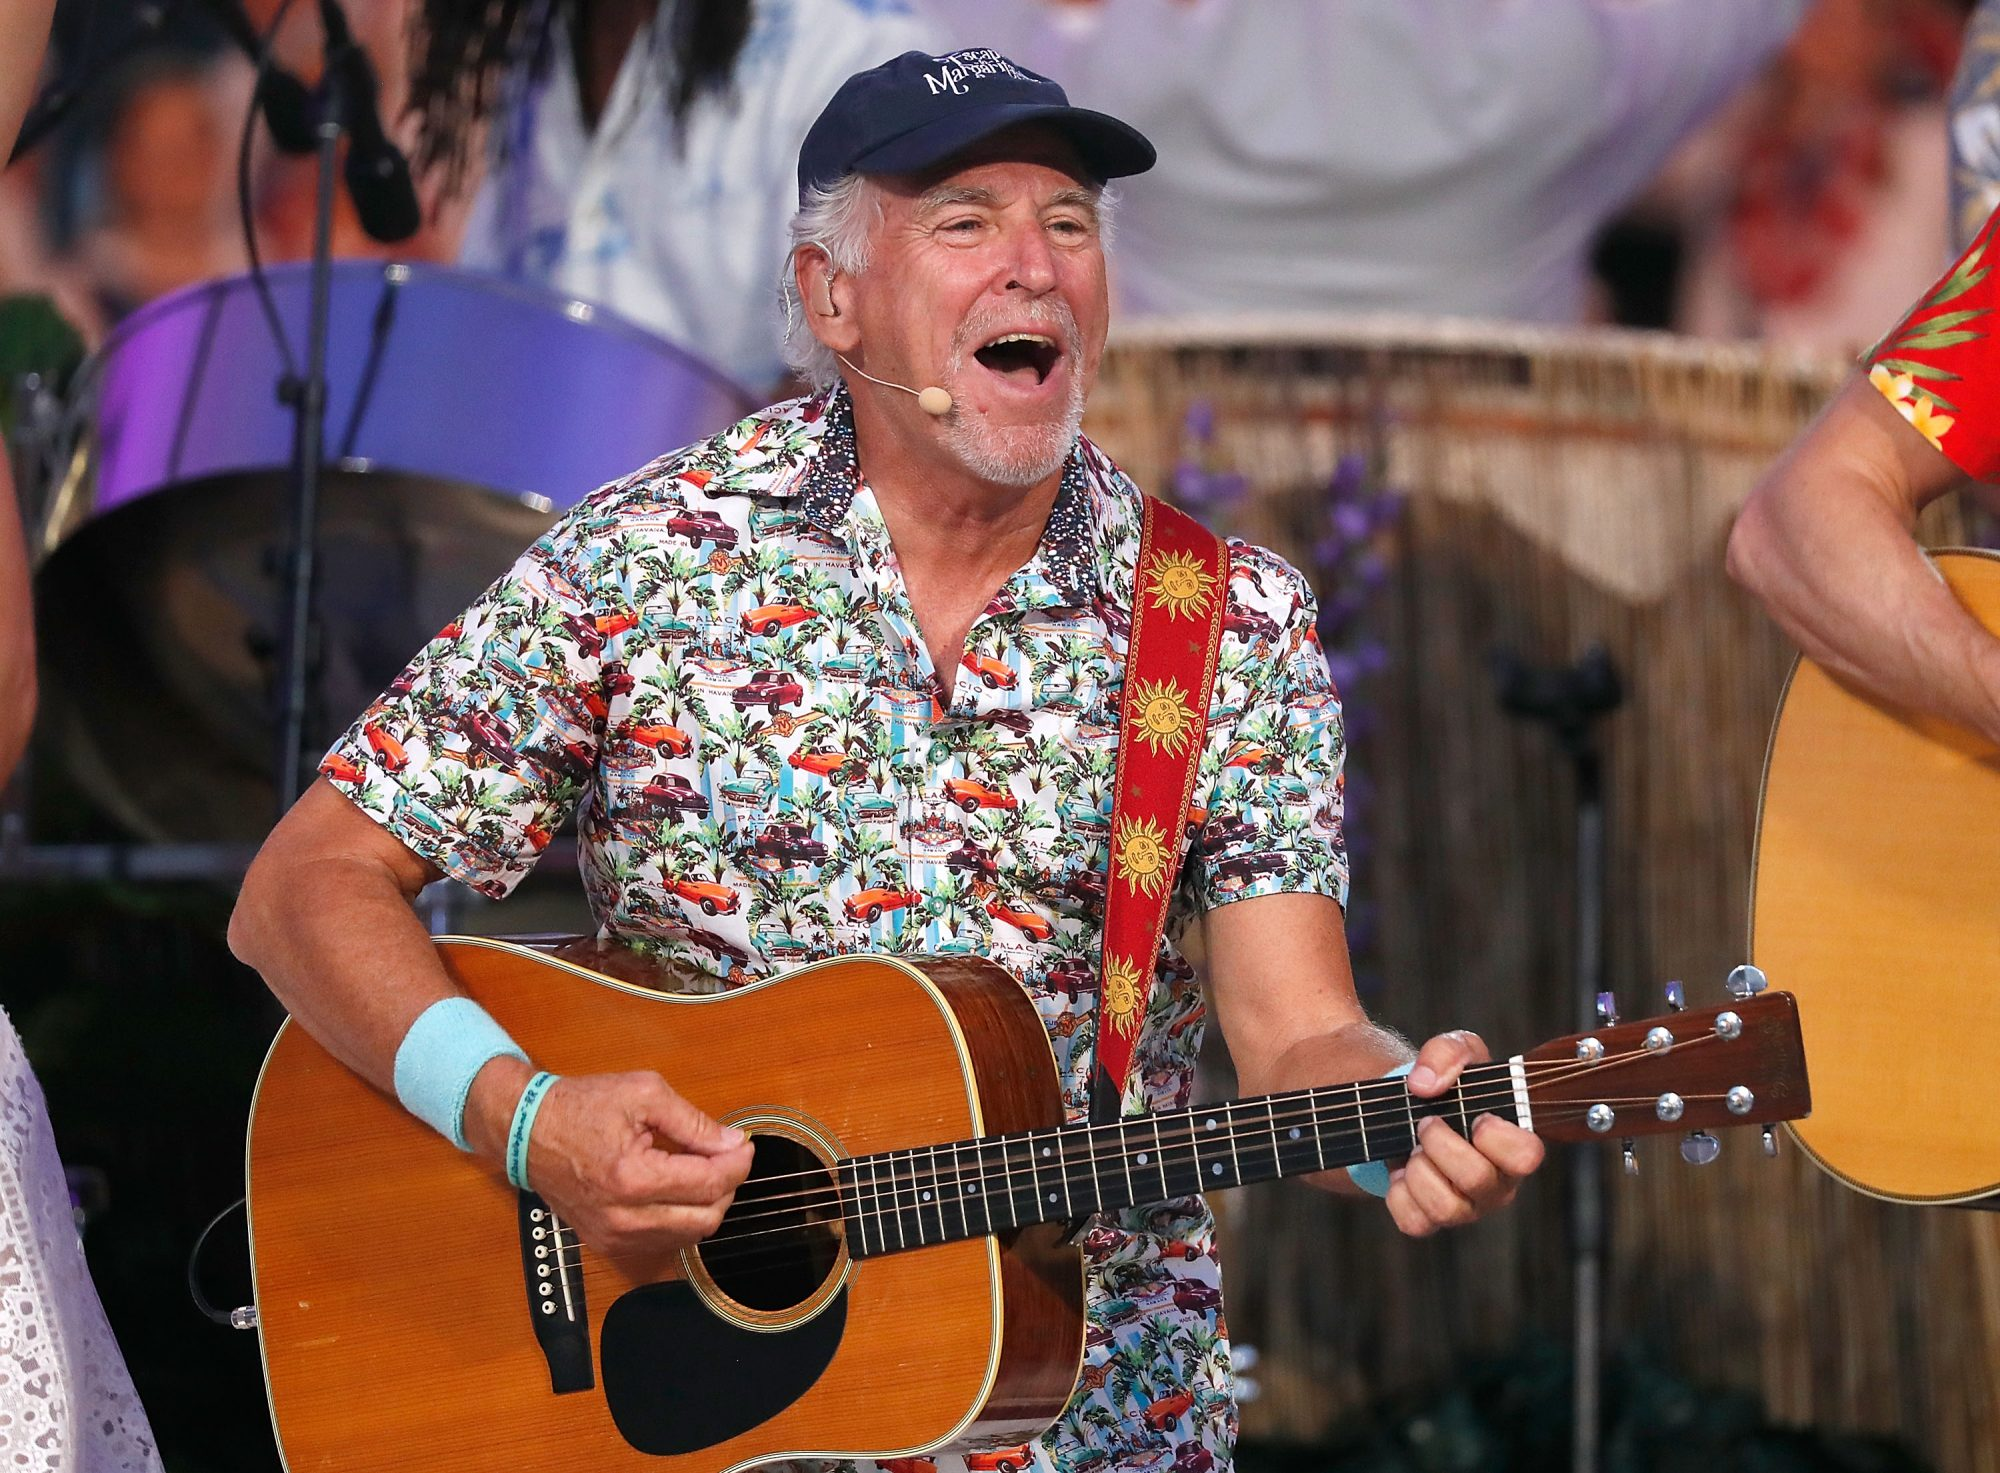 Jimmy Buffett July 4th